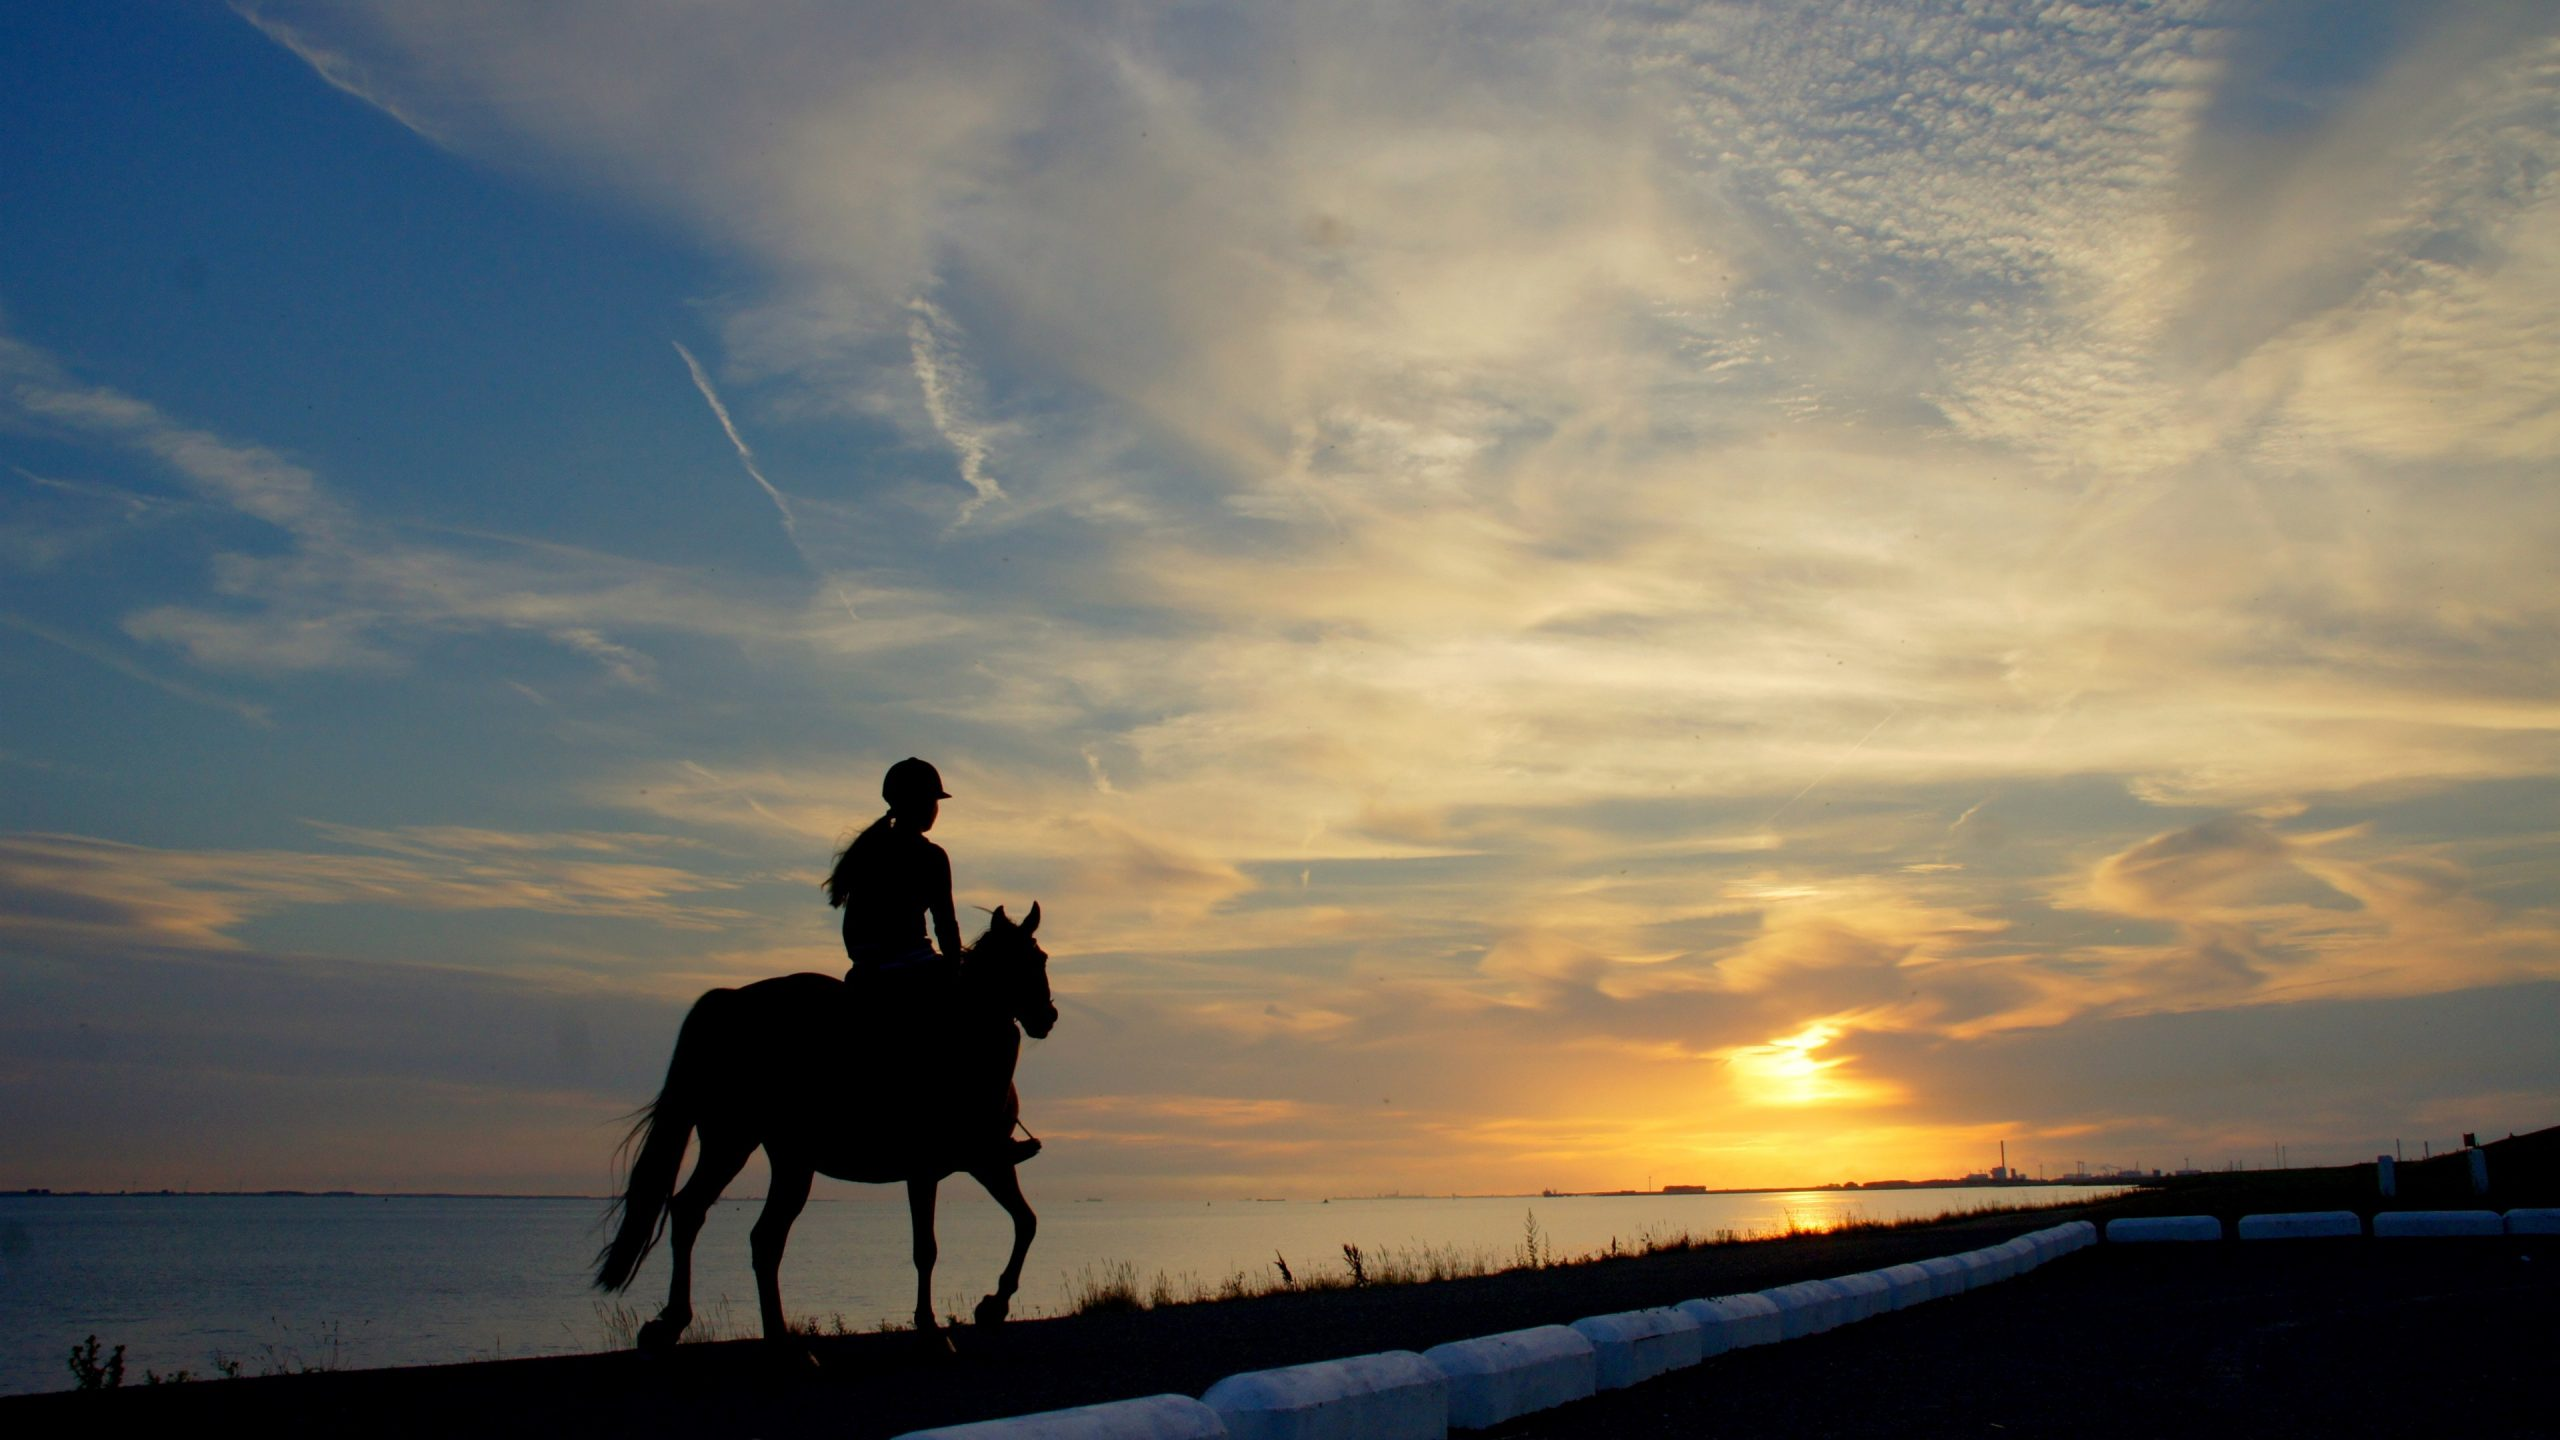 Girl rider horse river silhouette sky clouds sunset wallpapers